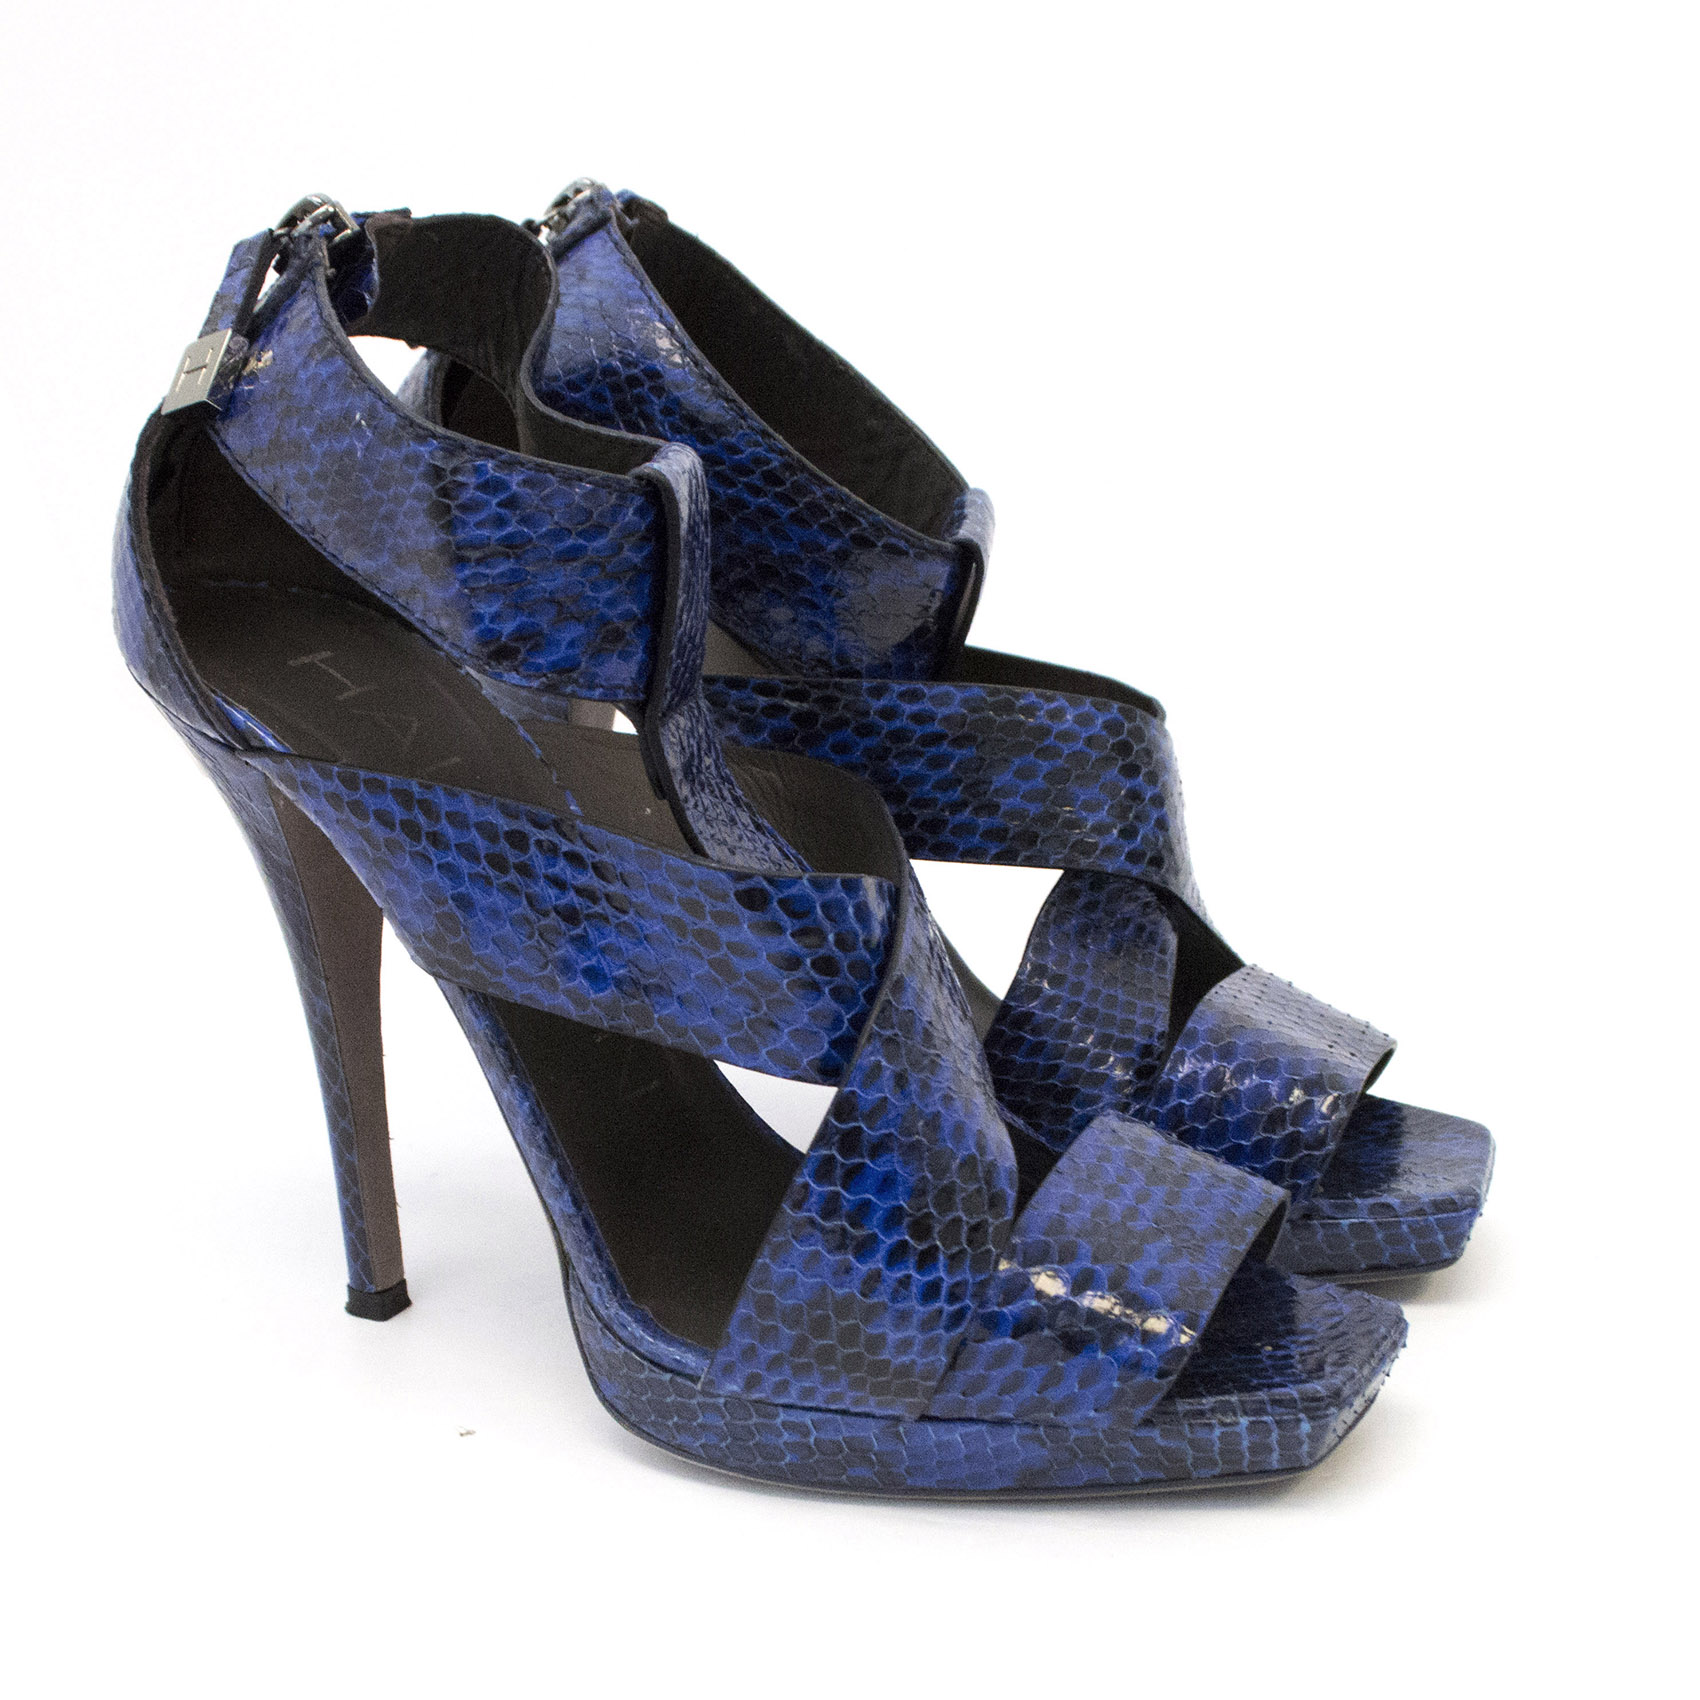 Halston Royal Blue and Black Snakeskin Heel Sandals